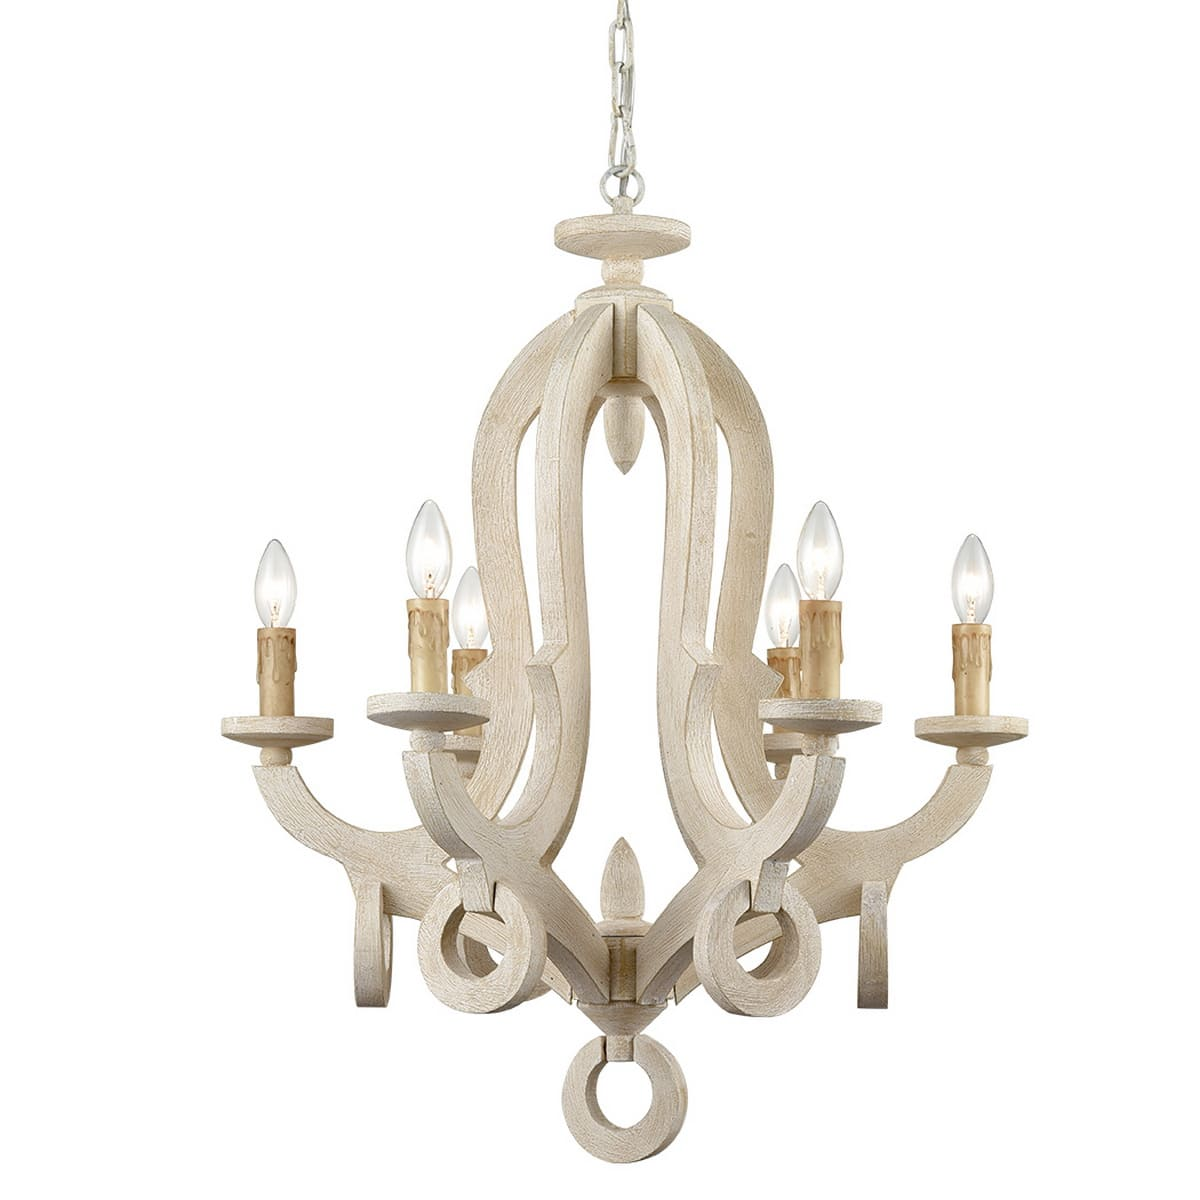 Weathered Wooden Chandeliers Rustic 6 Light Sculpted Candle Light Fixture